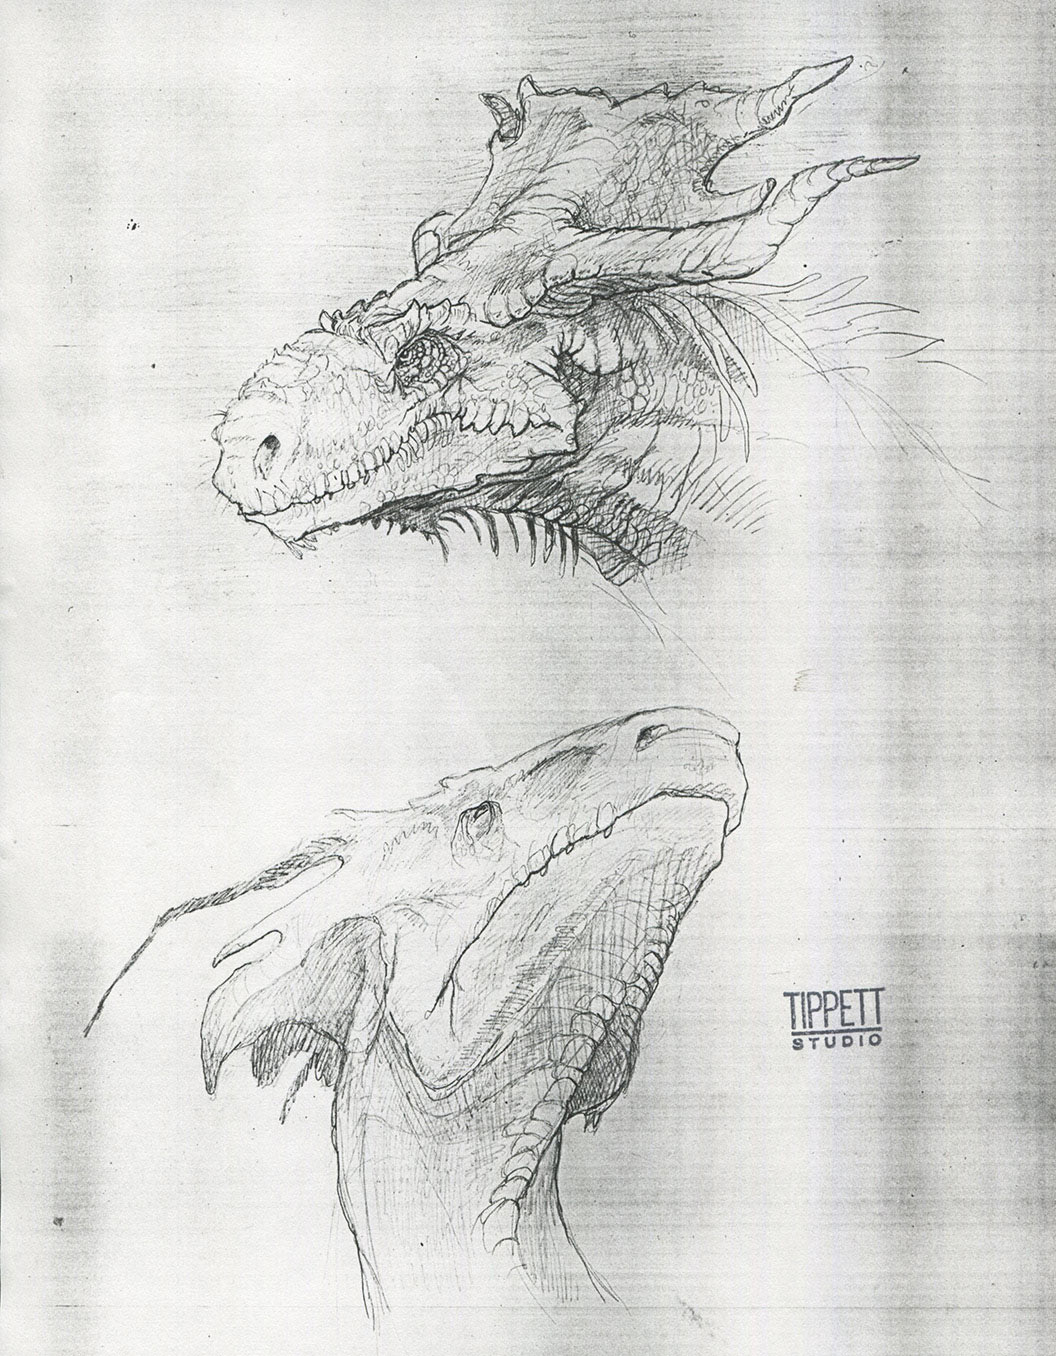 Some of Tippett Studio's original designs for Draco.